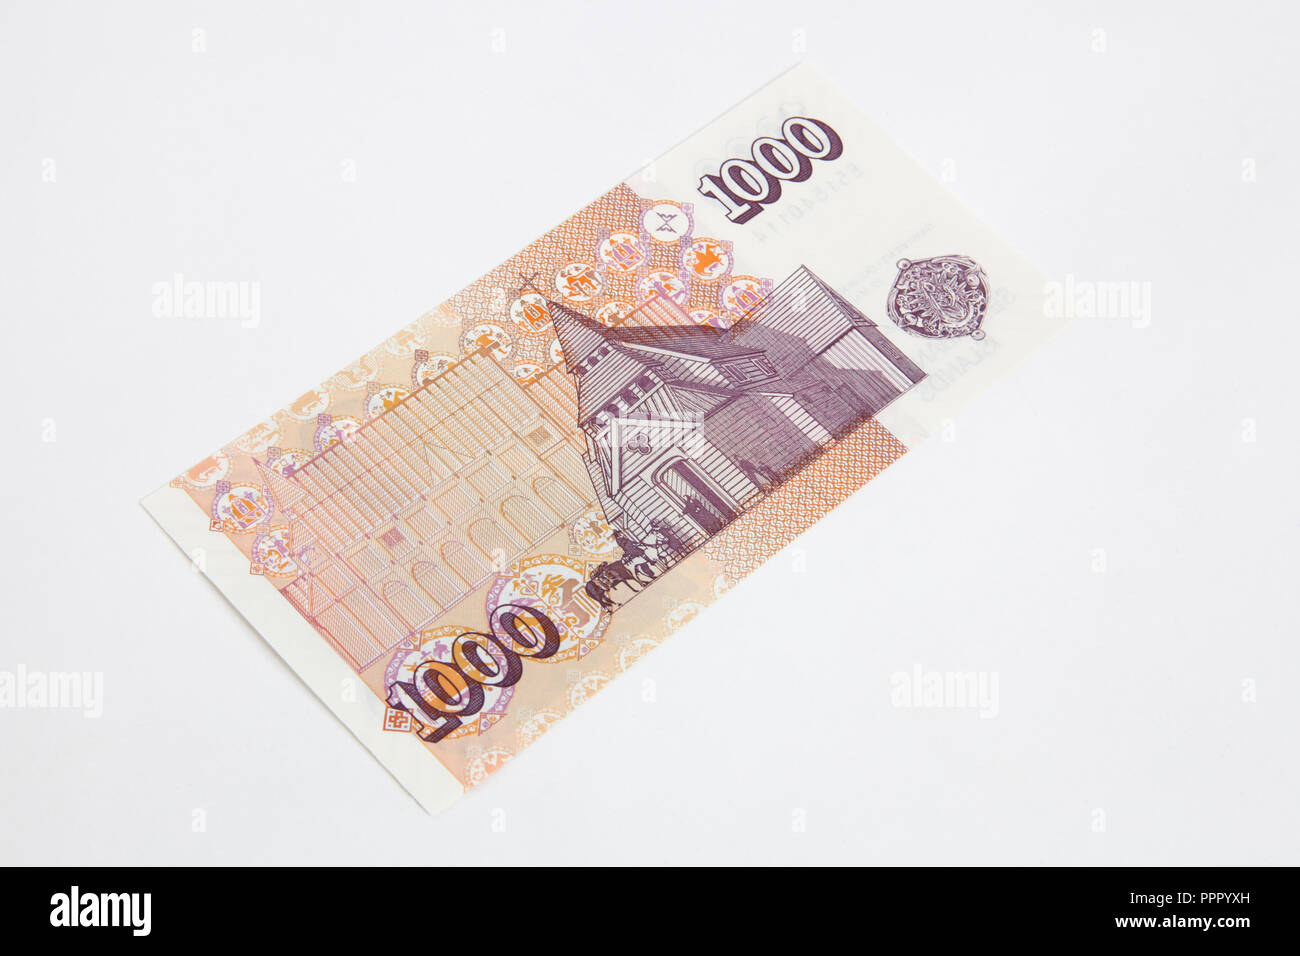 The back of a 1000 Icelandic Krona bank note - Stock Image